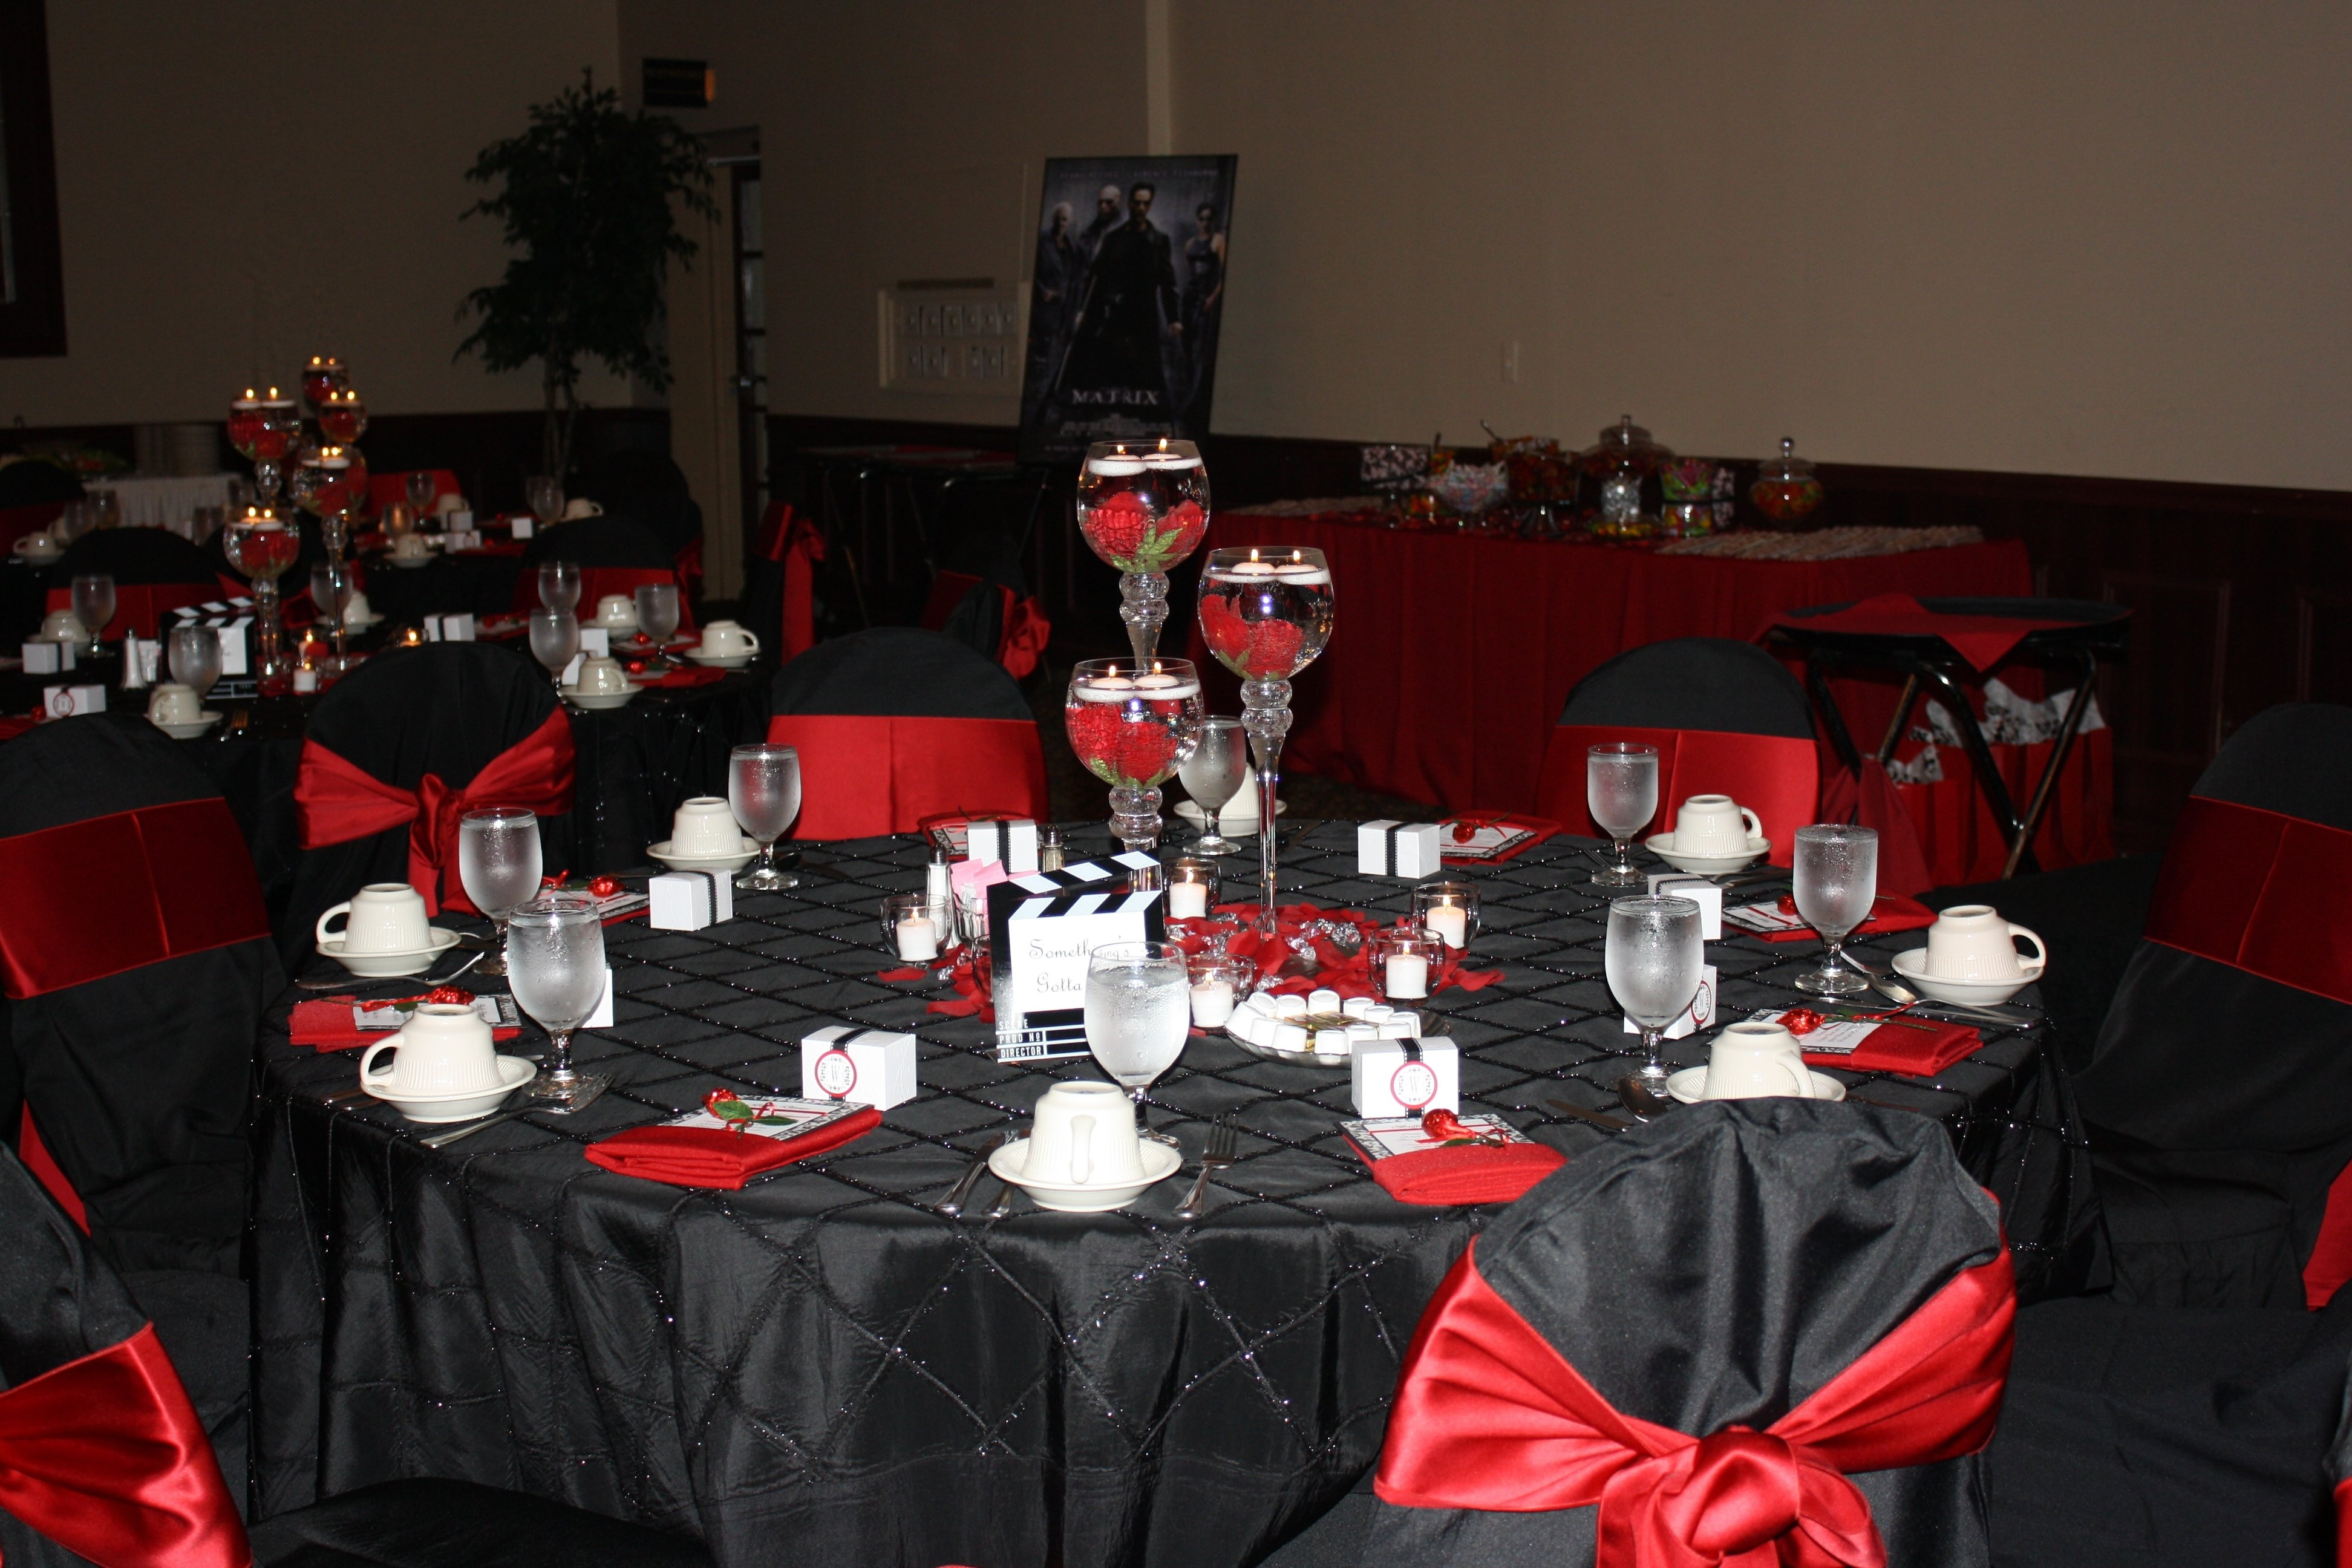 10 Elegant Red Black And White Wedding Reception Ideas red black white wedding movie theme wedding movie theme 2020